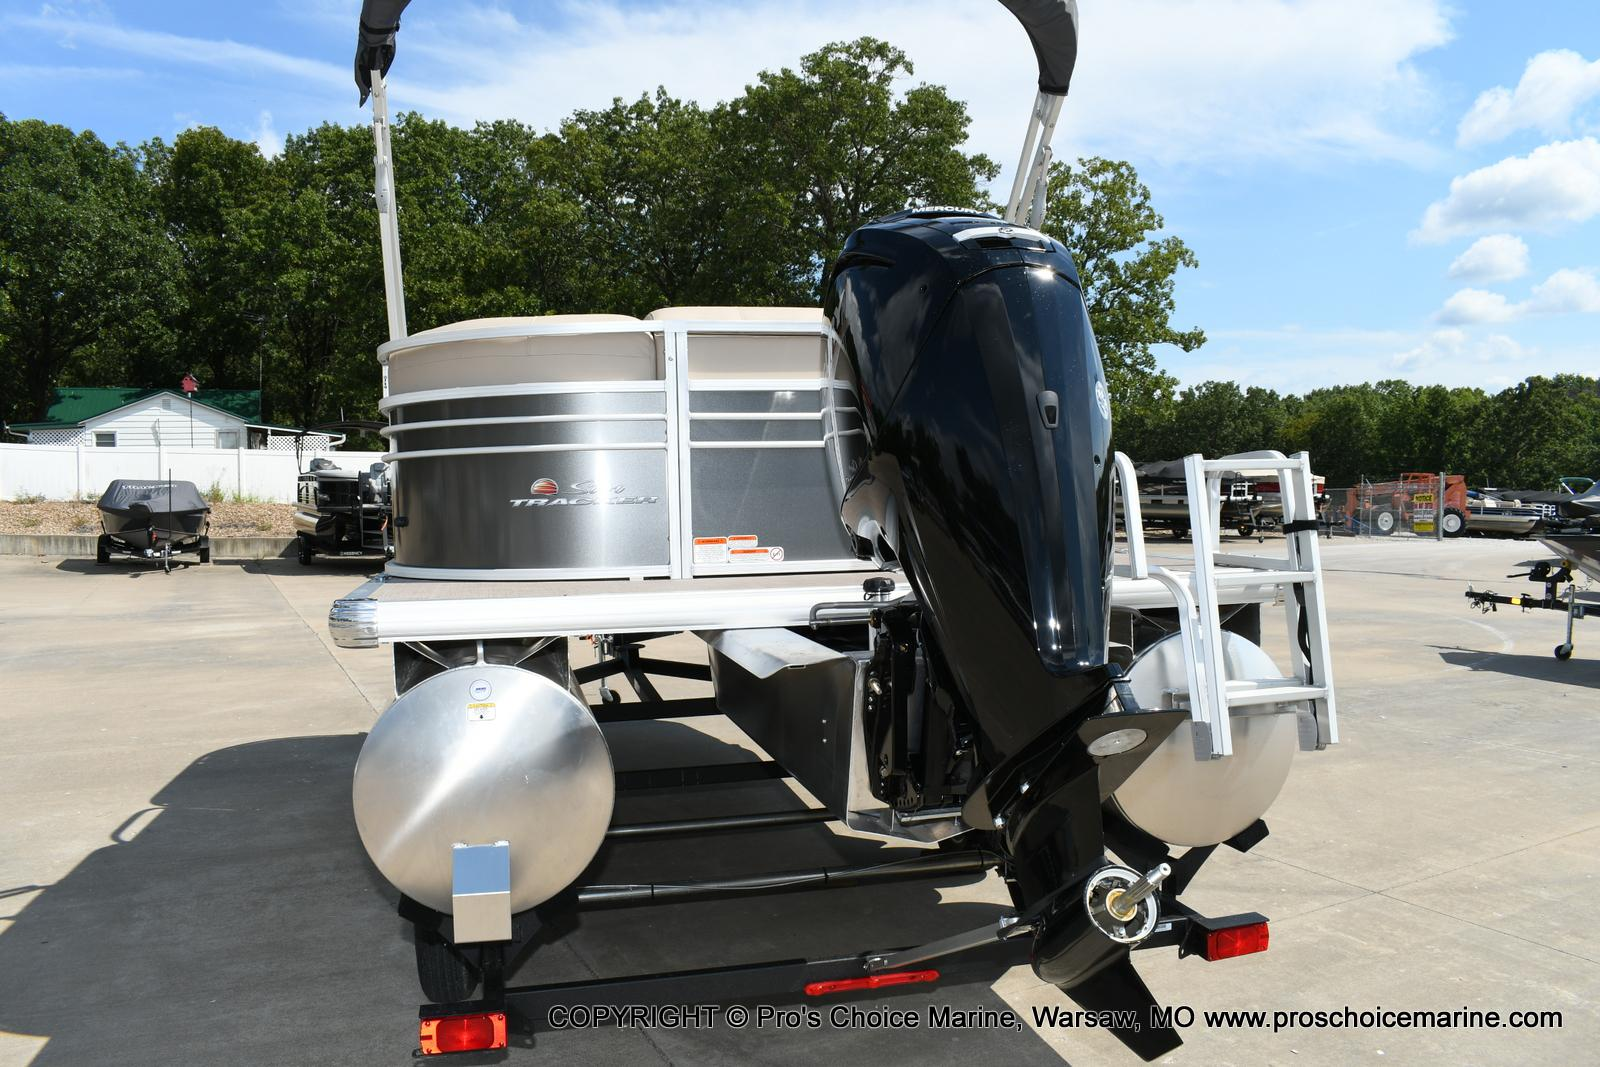 2020 Sun Tracker boat for sale, model of the boat is Party Barge 20 DLX & Image # 13 of 50